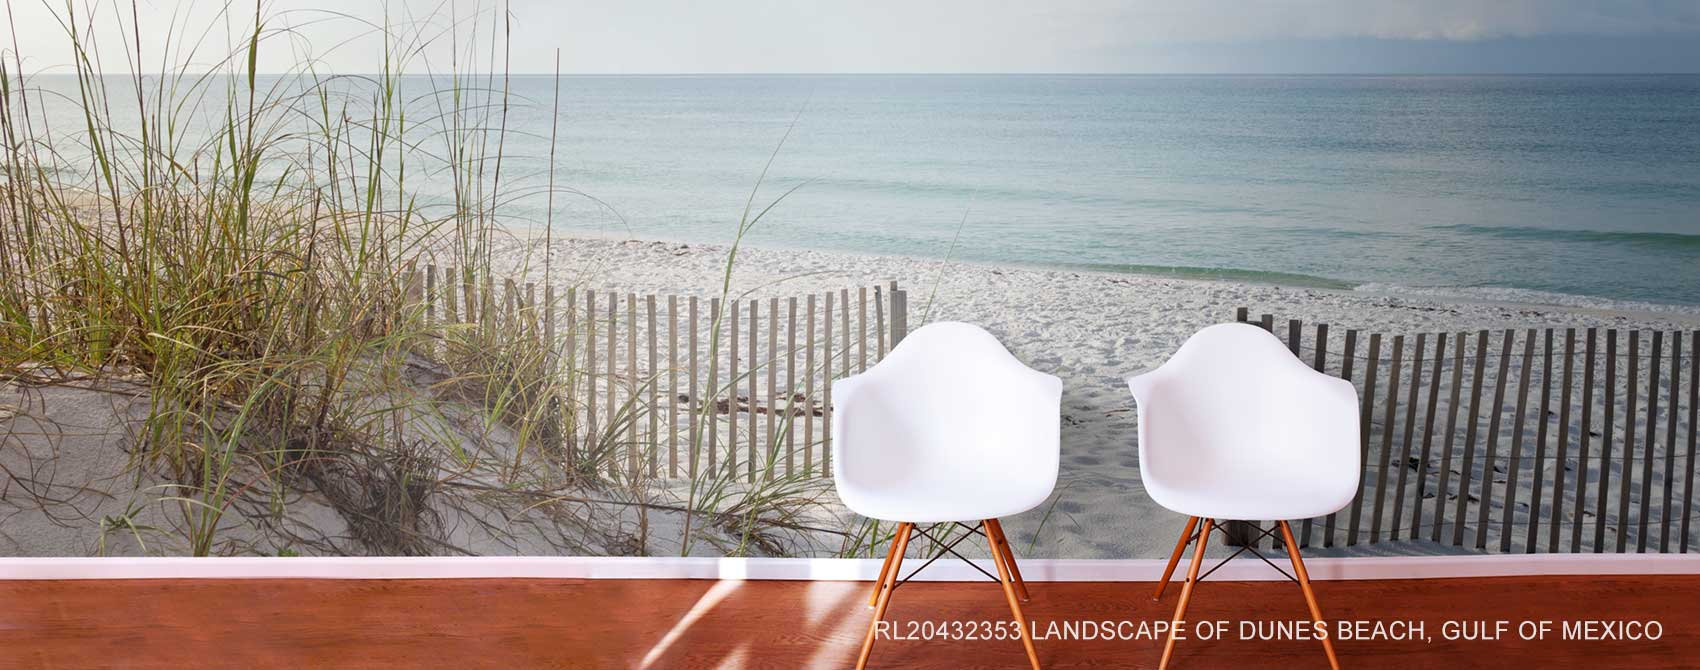 Landscape of Dunes Beach, Gulf of Mexico Wallpaper Mural